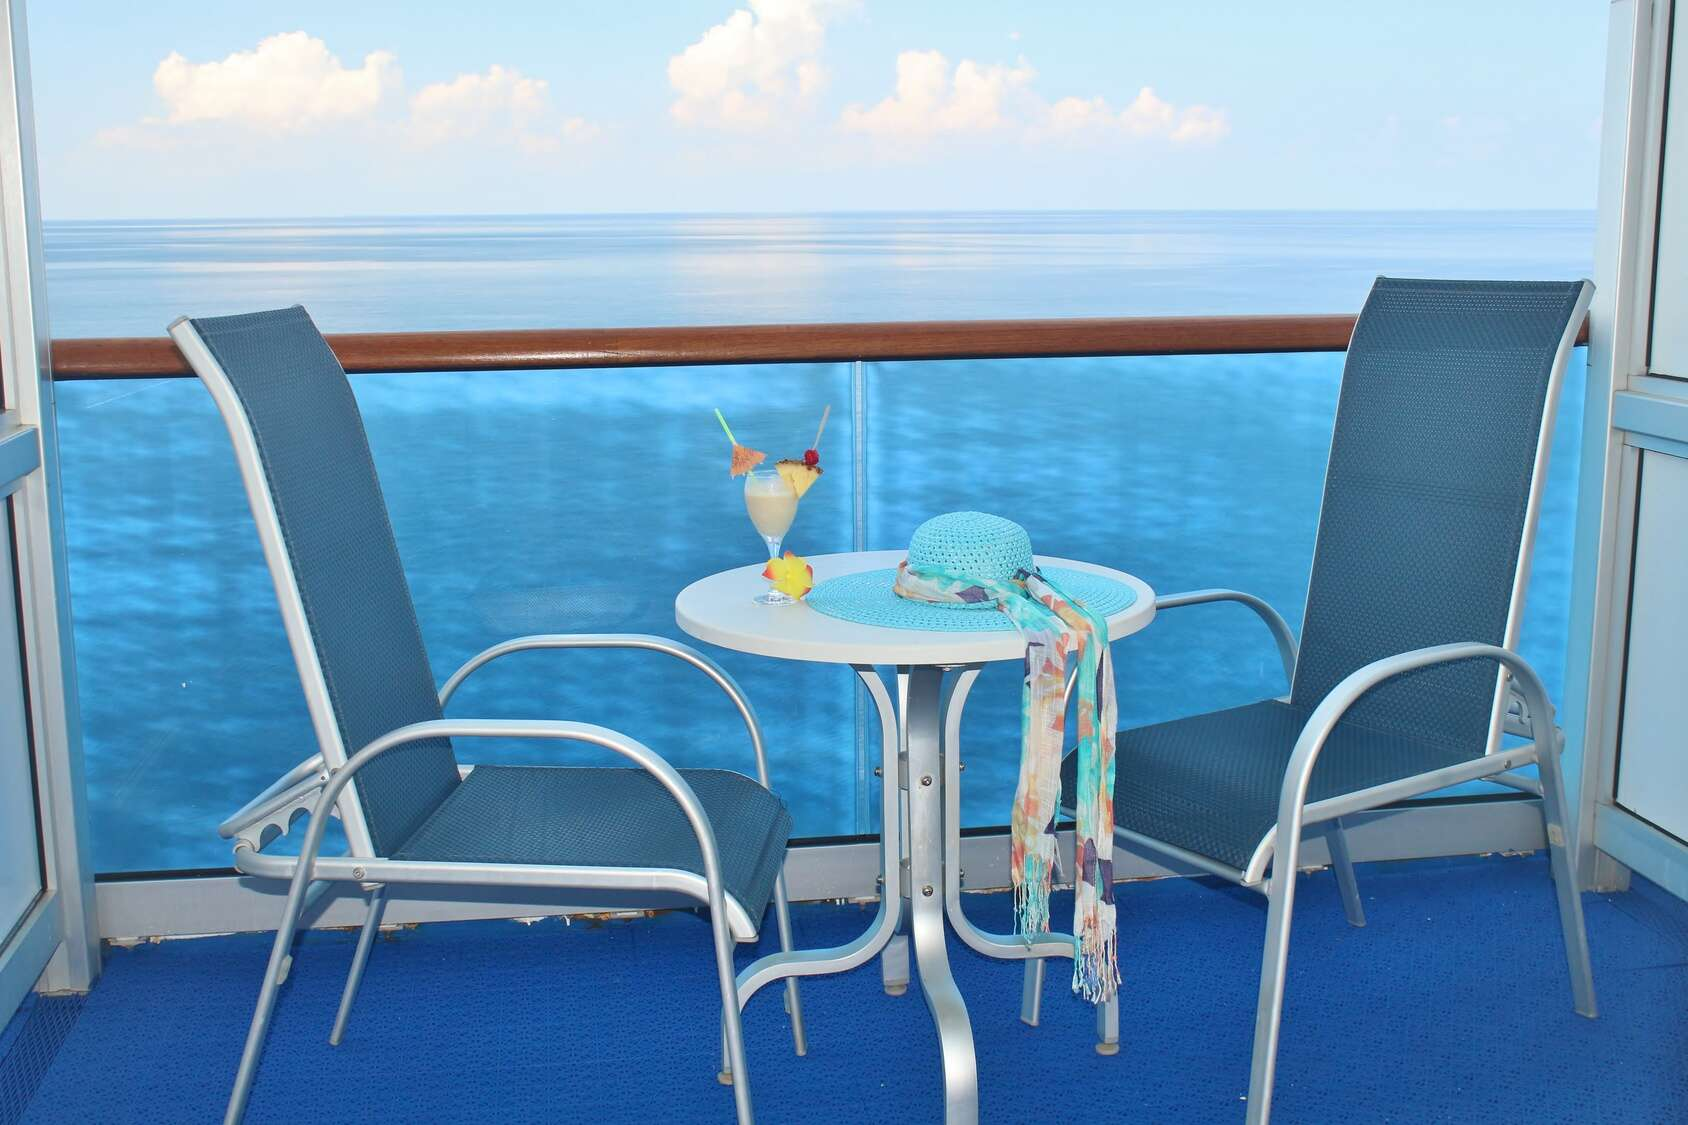 14 Things Only People Obsessed With Cruising Will Understand